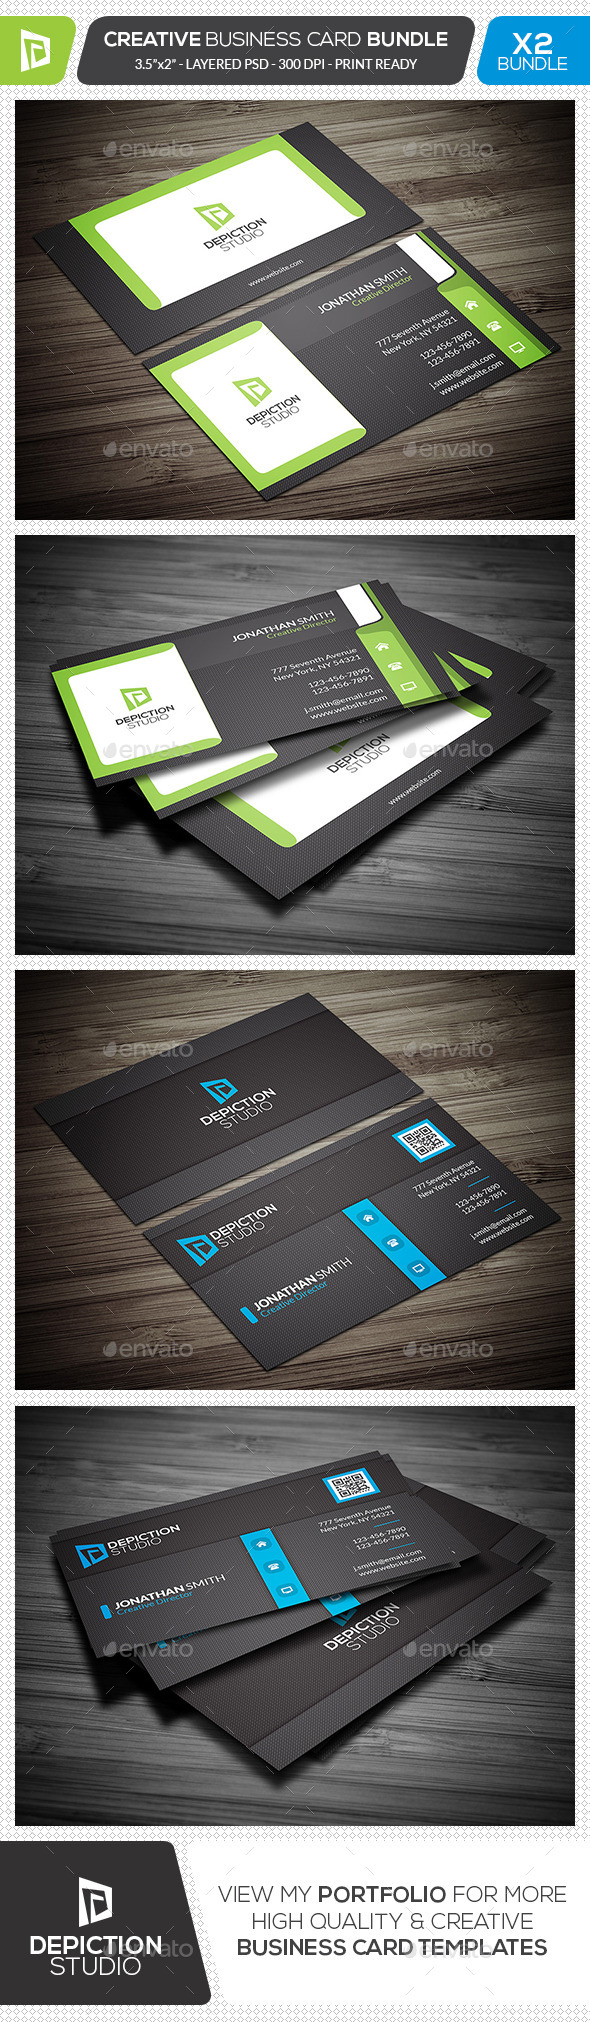 GraphicRiver Creative Business Card Bundle 11881710